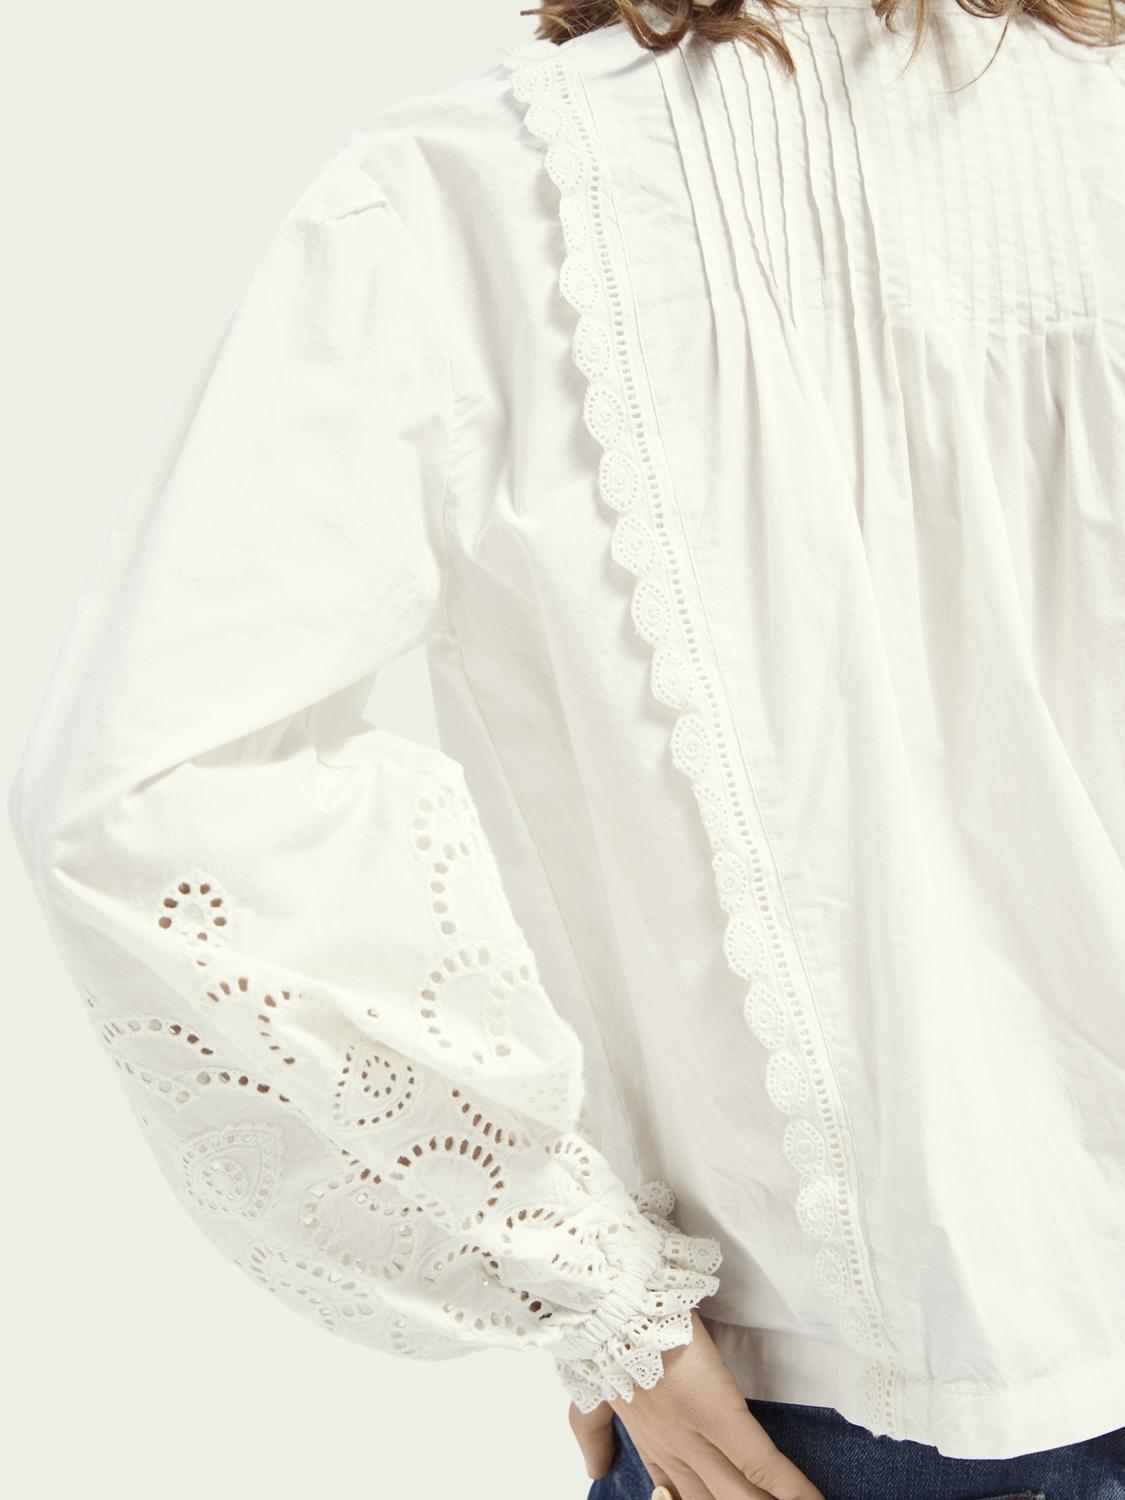 Broderie anglaise detail top 4